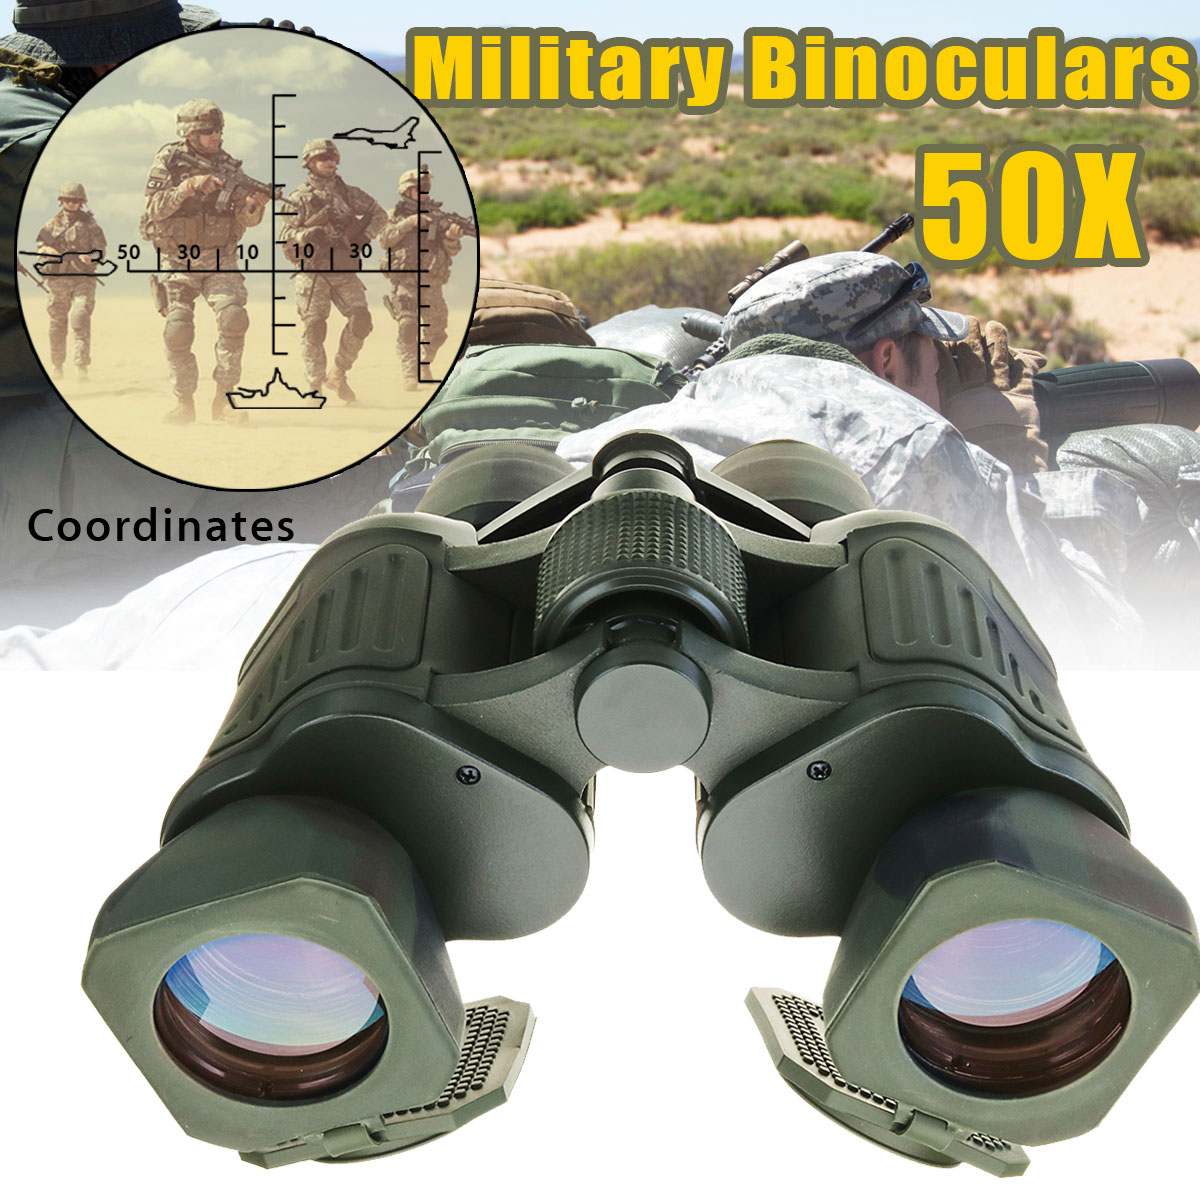 SGODDE 50x50 Tactical Binoculars Outdoor Night Vision Telescope HD Match Coordinates Low Light Level Hunting Telescope цена